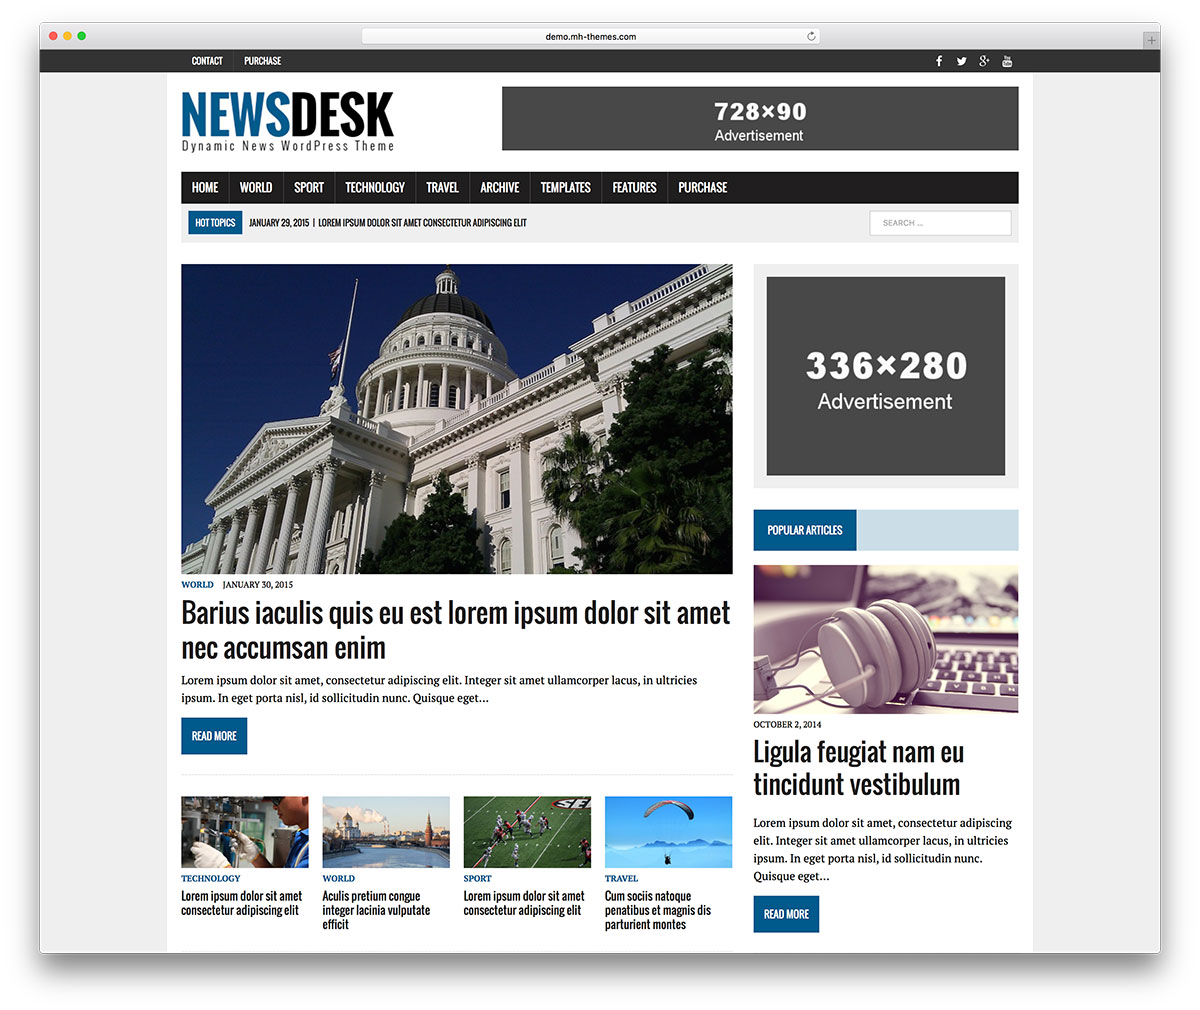 newsdesk-classic-magazine-wordpress-theme